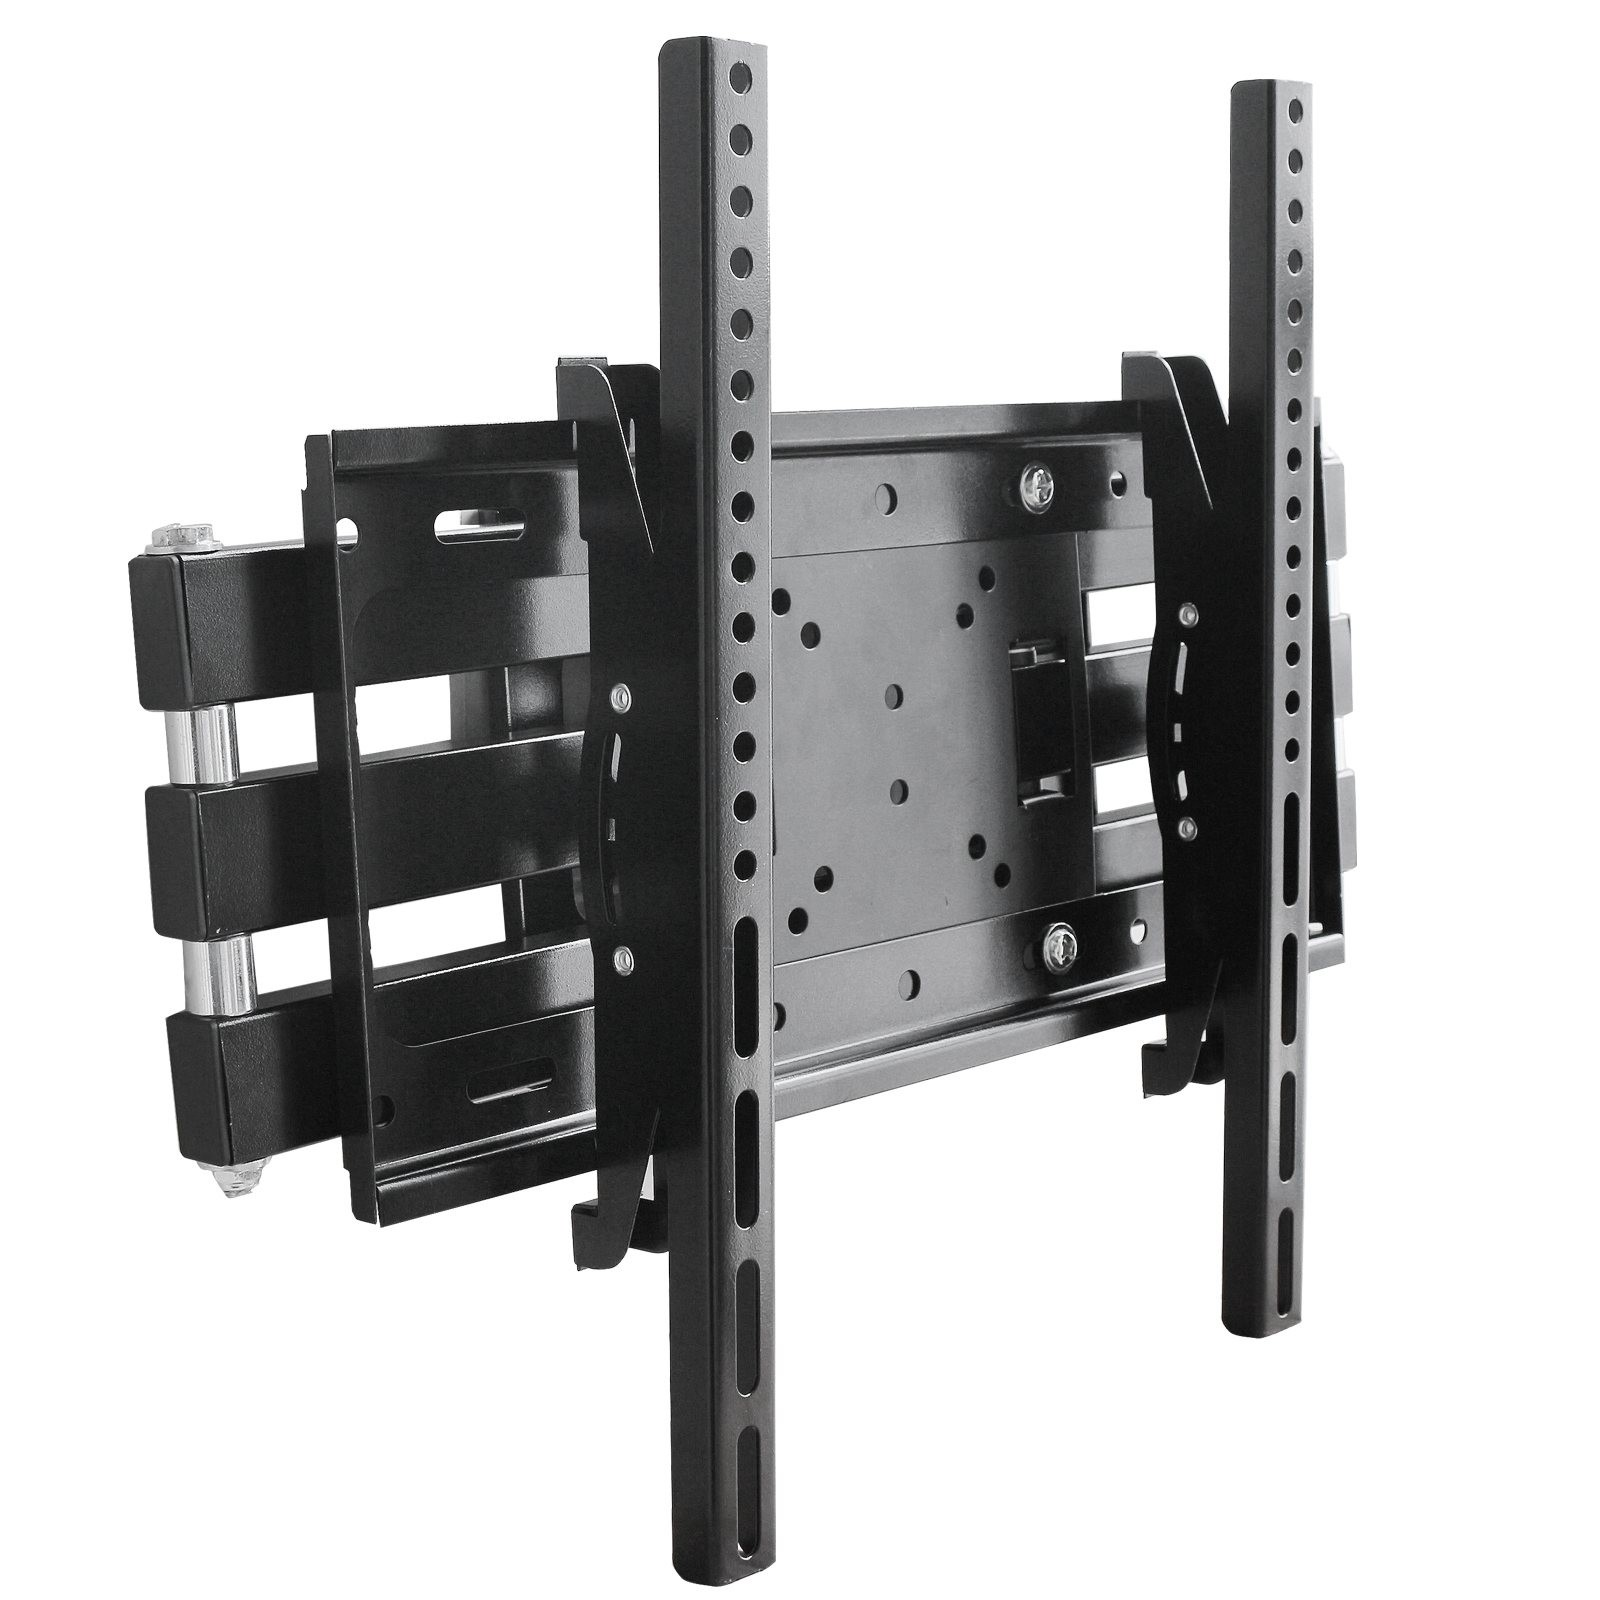 Cantilever Tv Wall Mount Bracket For 26 55 Inches Lcd Led Plasma  # Meuble Tv Angle Spaceo